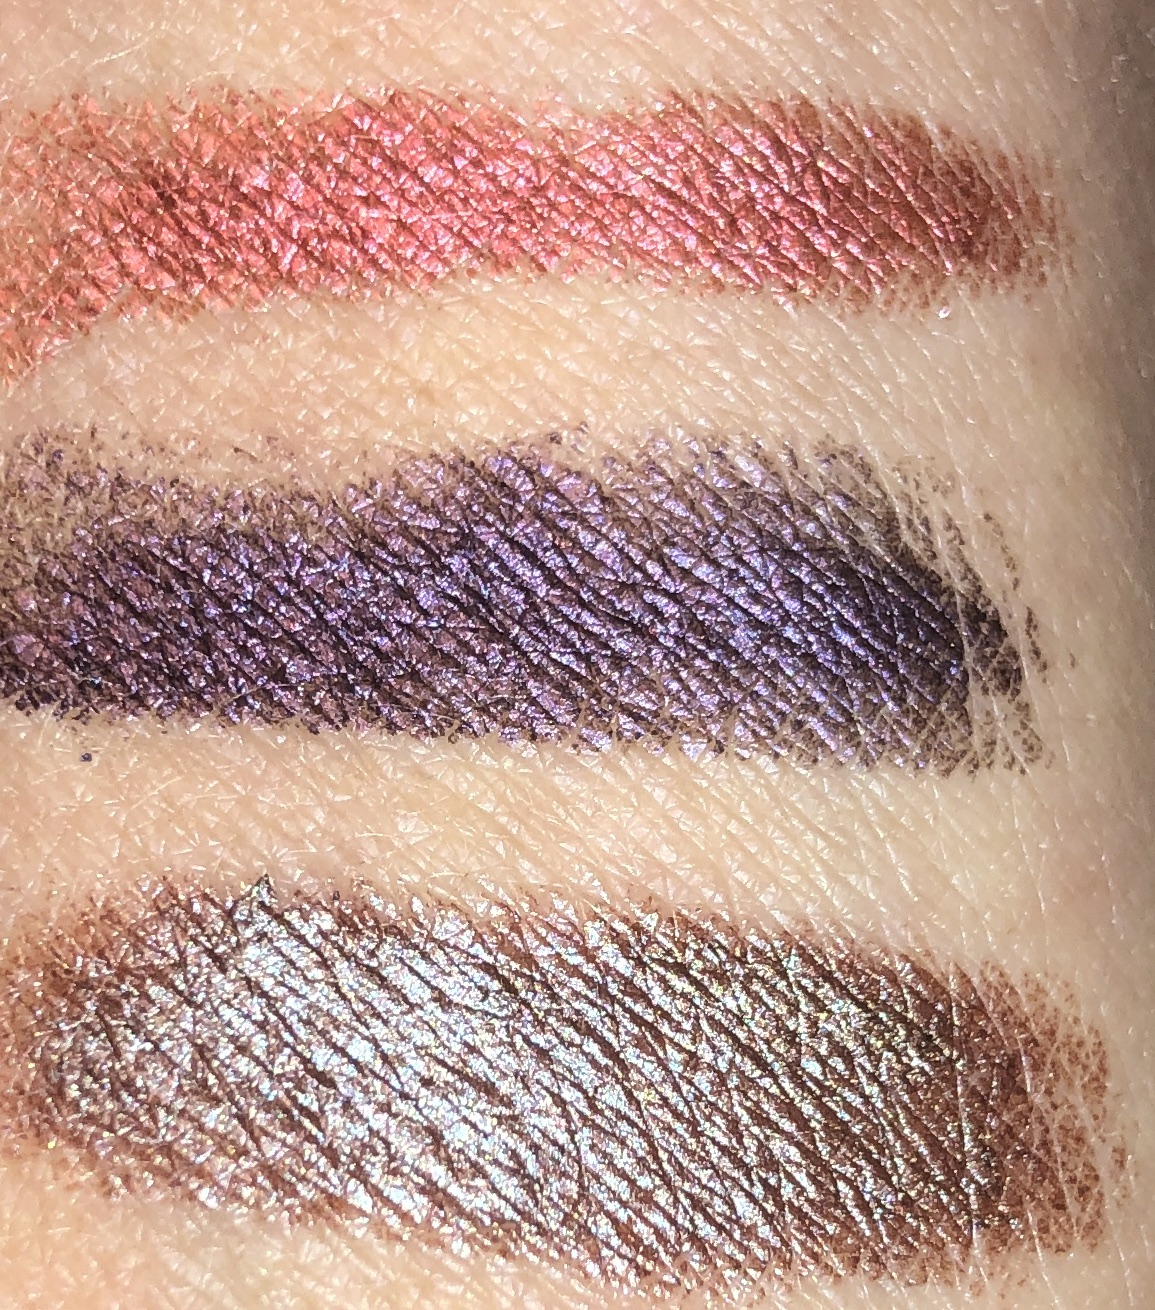 swatches top to bottom: PINK SAPPHIRE, AMETHYST, AND TOPAZ